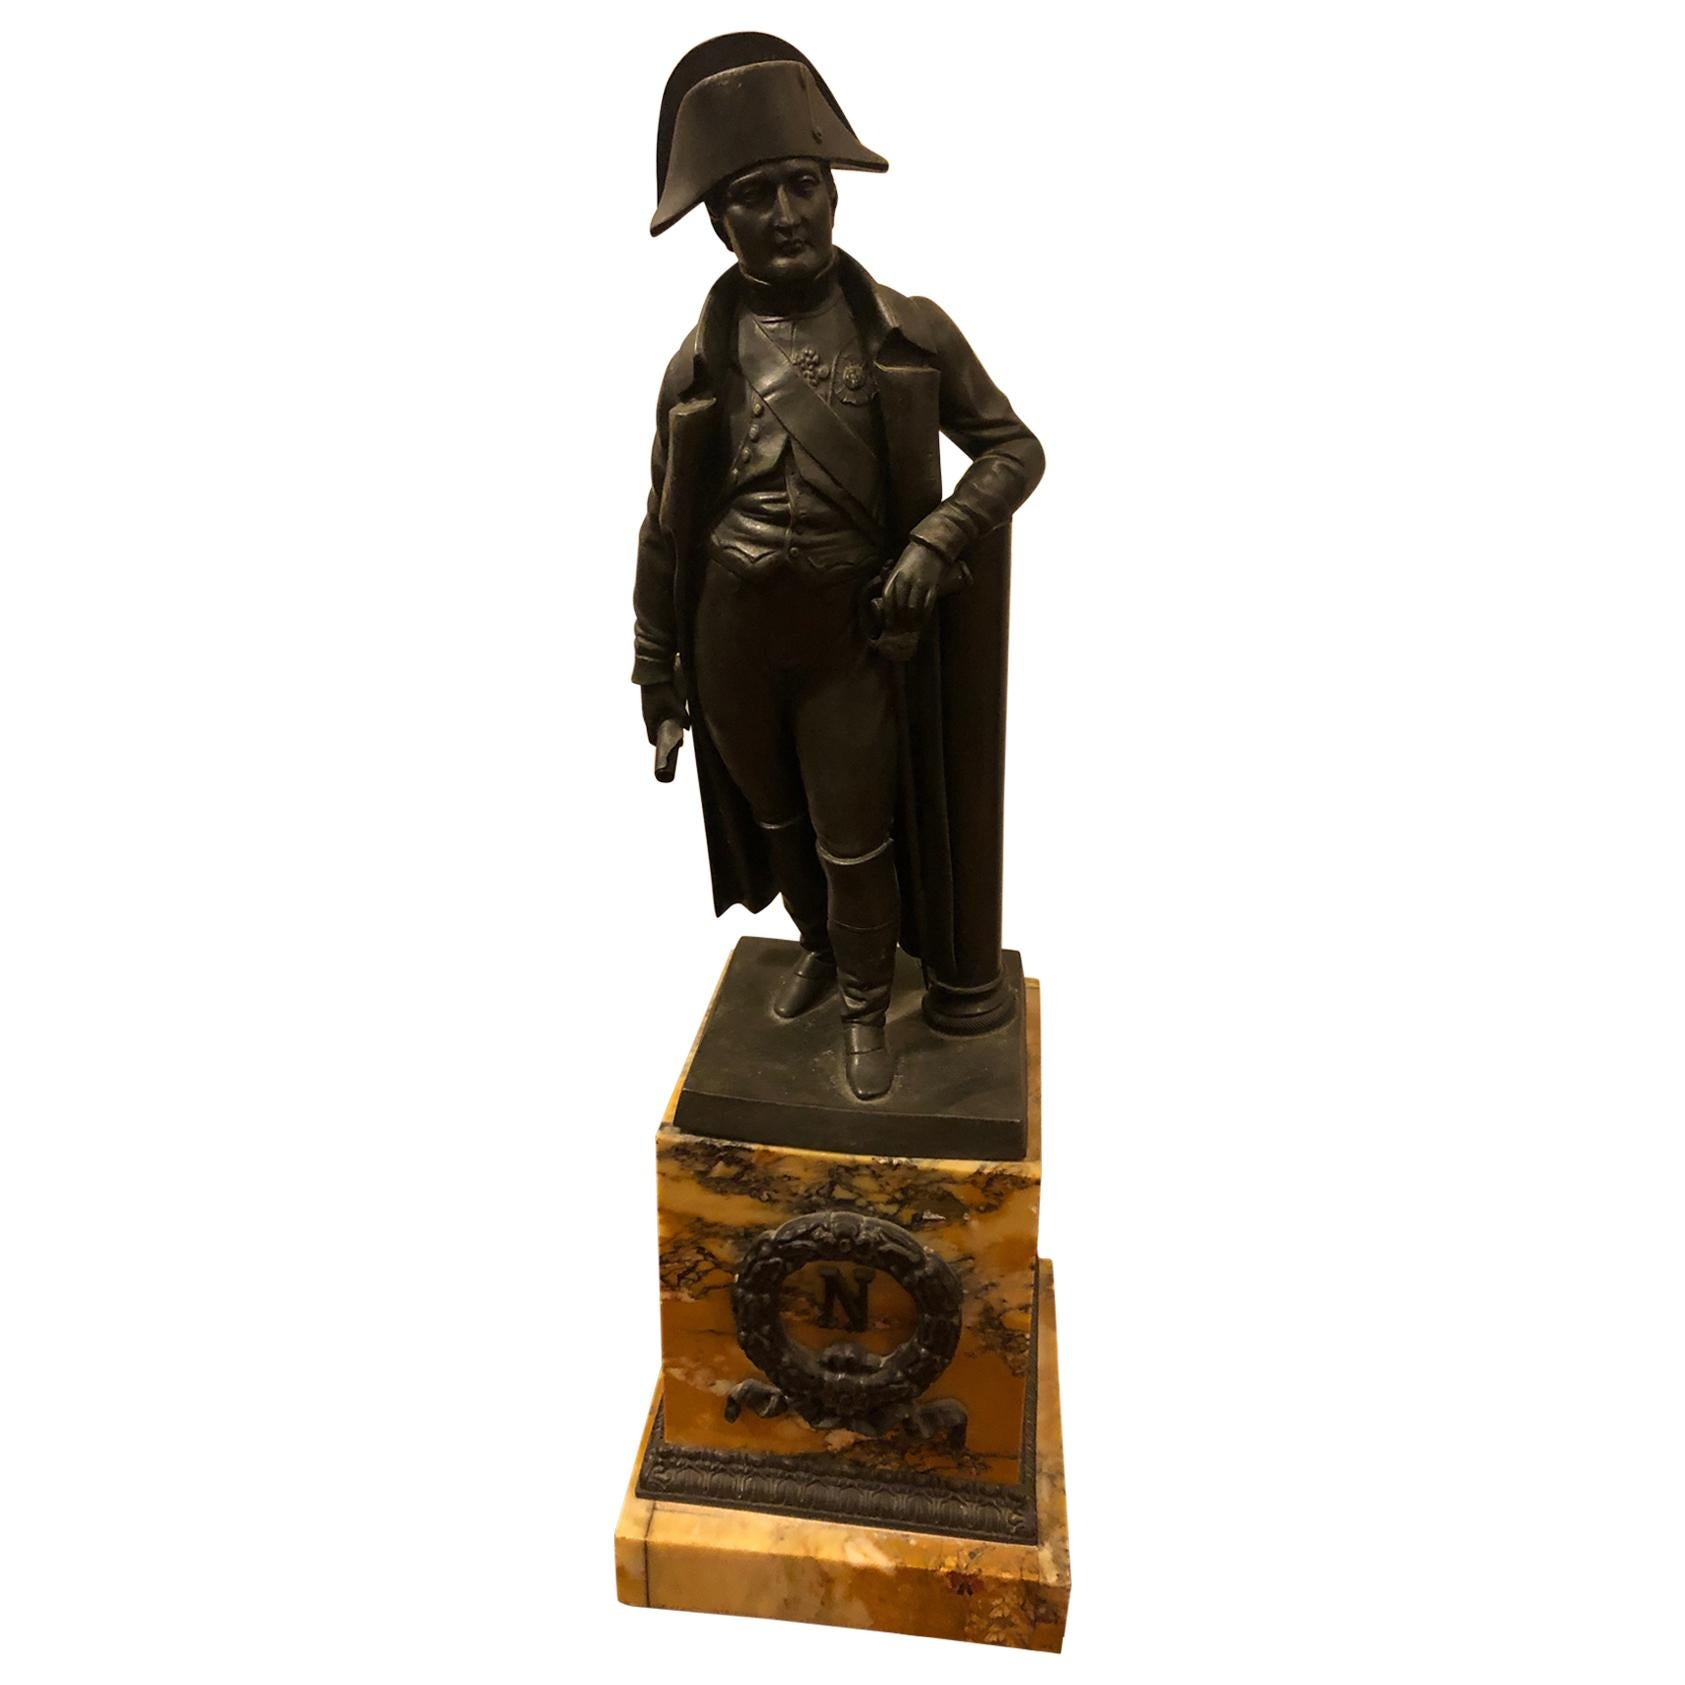 French Bronze of Napoleon on Sienna Marble Plinth